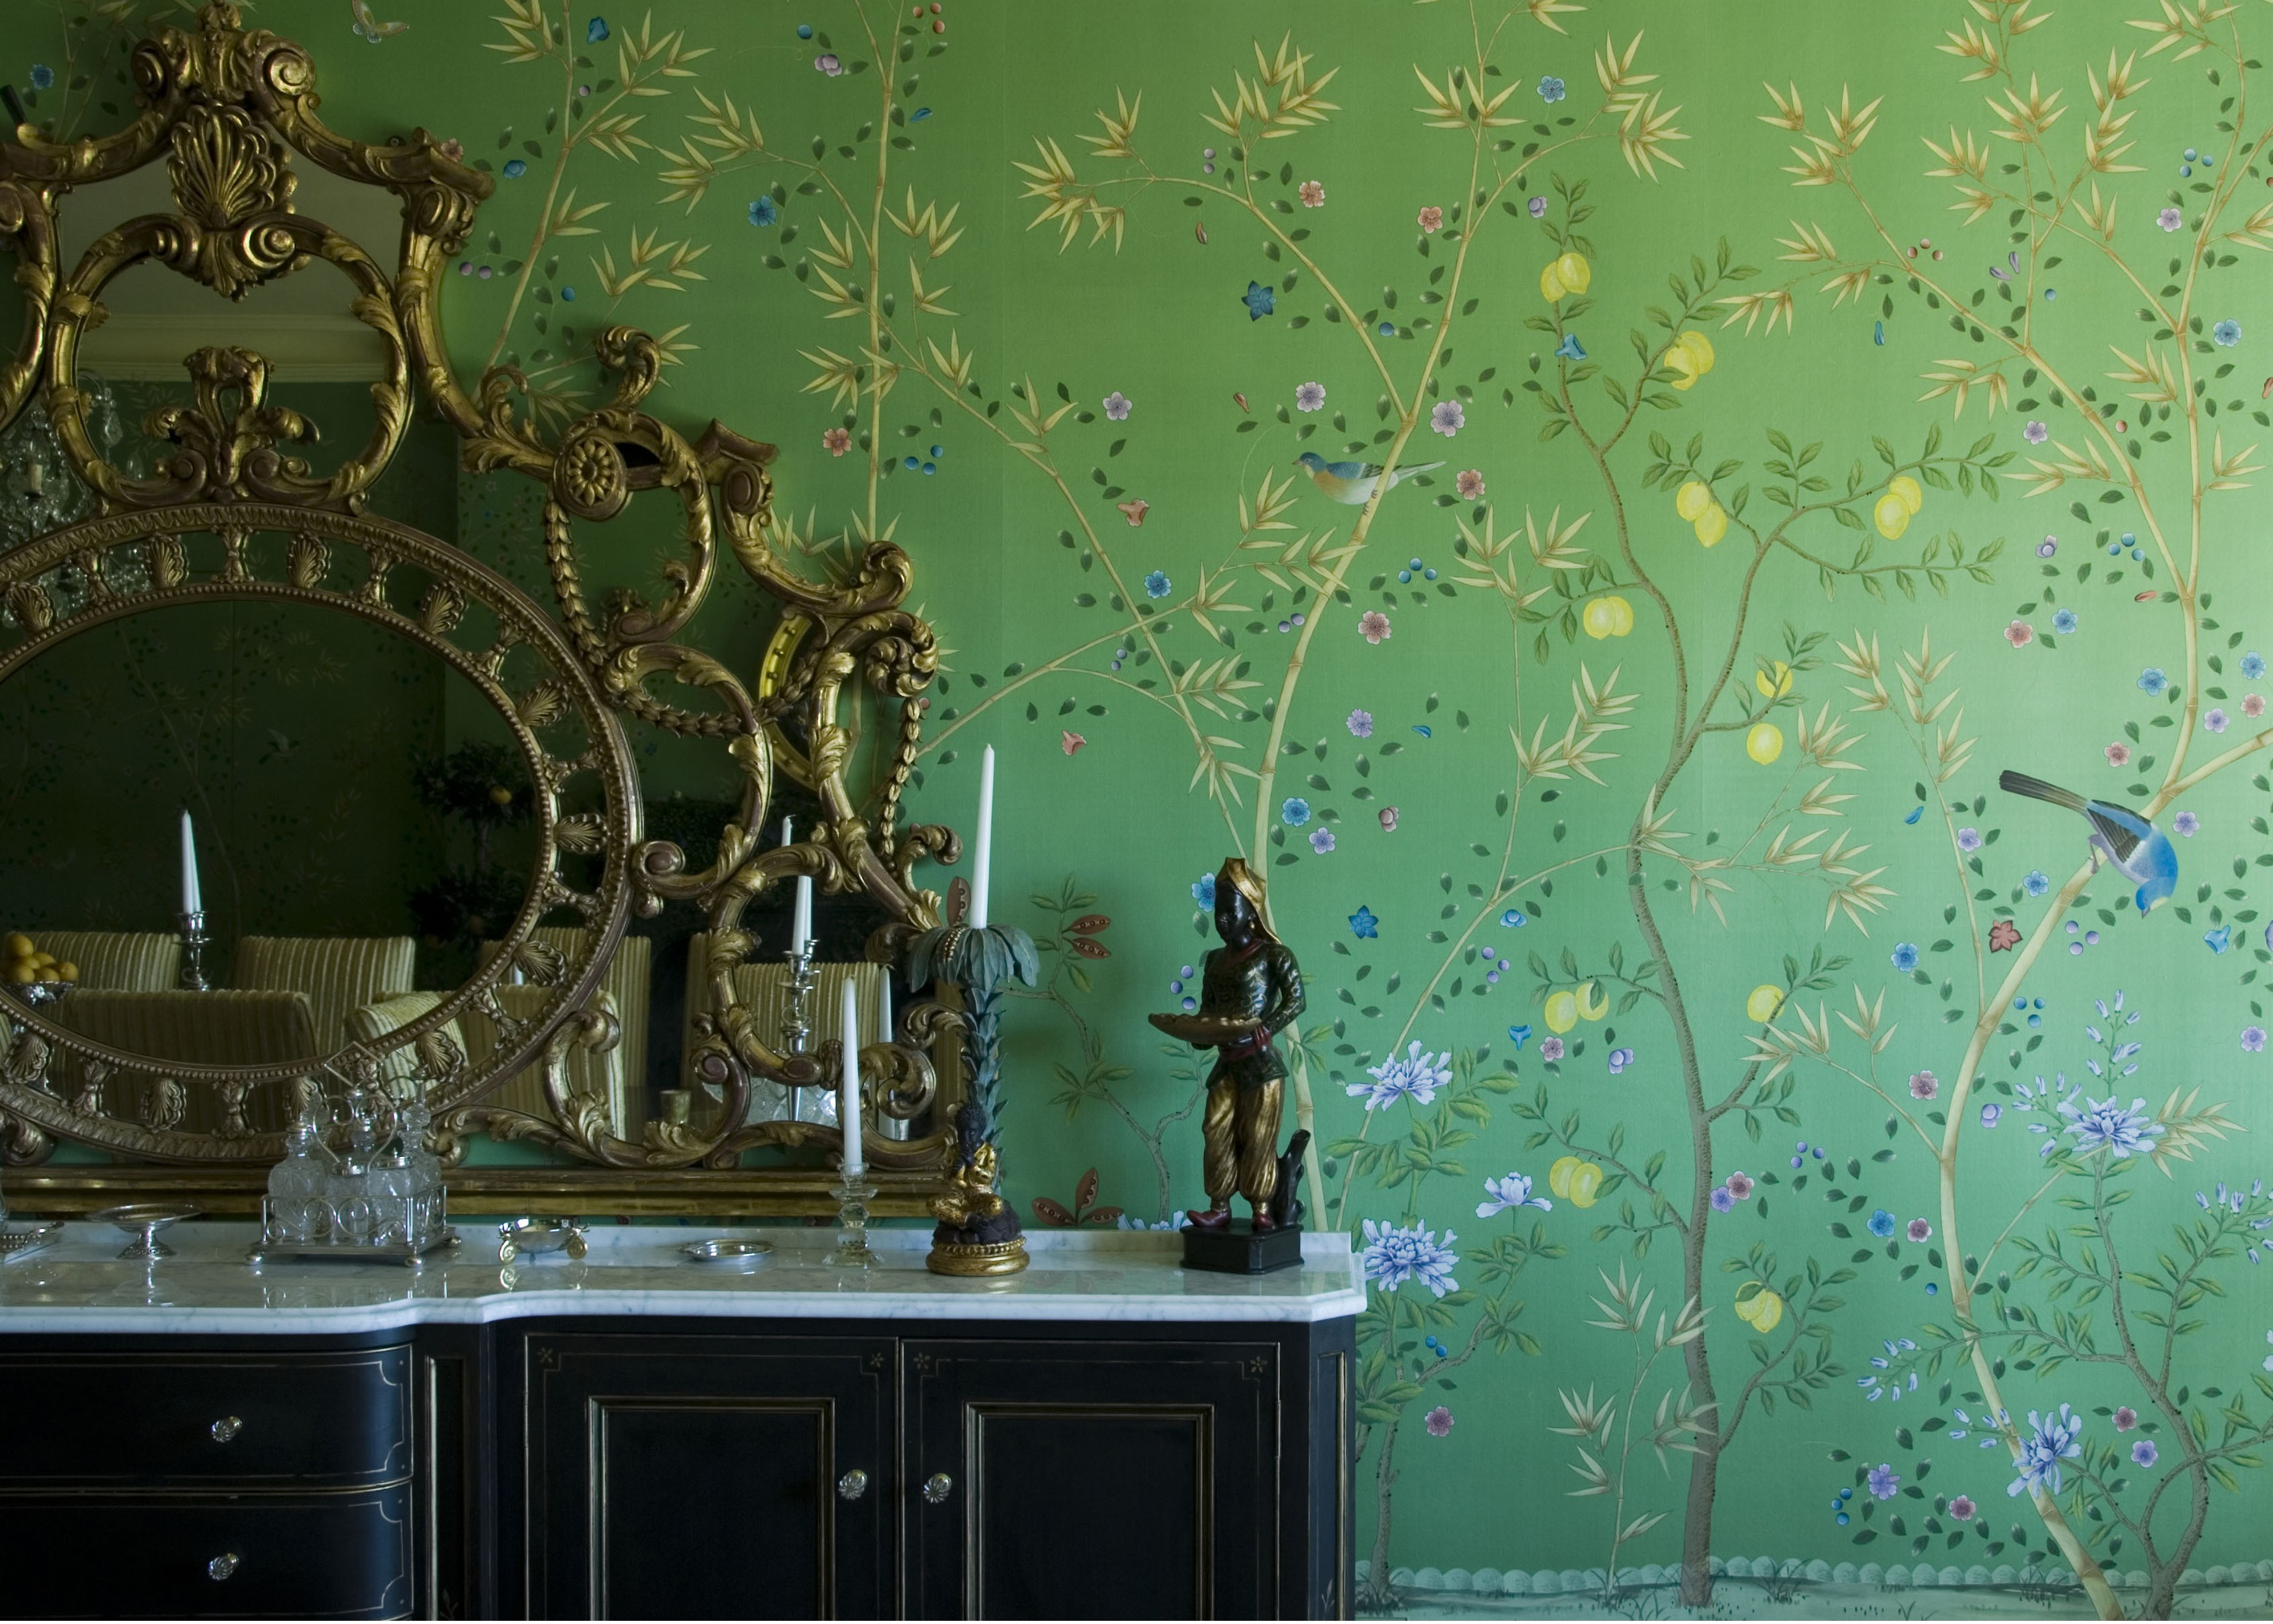 Wall with Chinese Wallpaper Design photo - 10